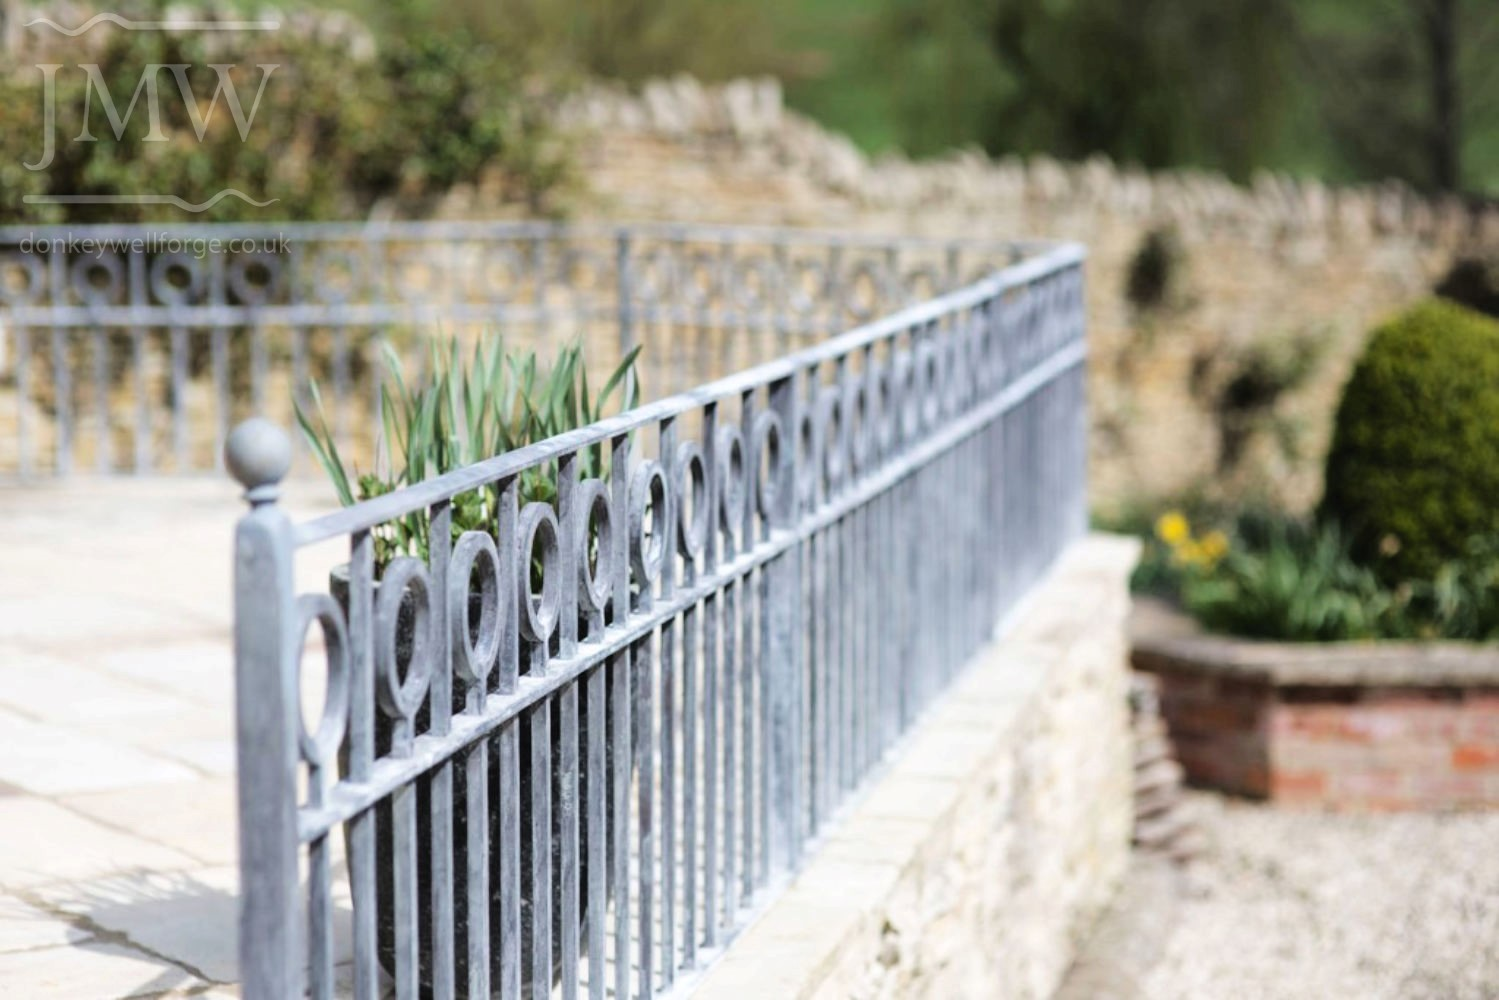 iron-railings-patio-zinc-lead-finish-cotswold-donkeywell-forge